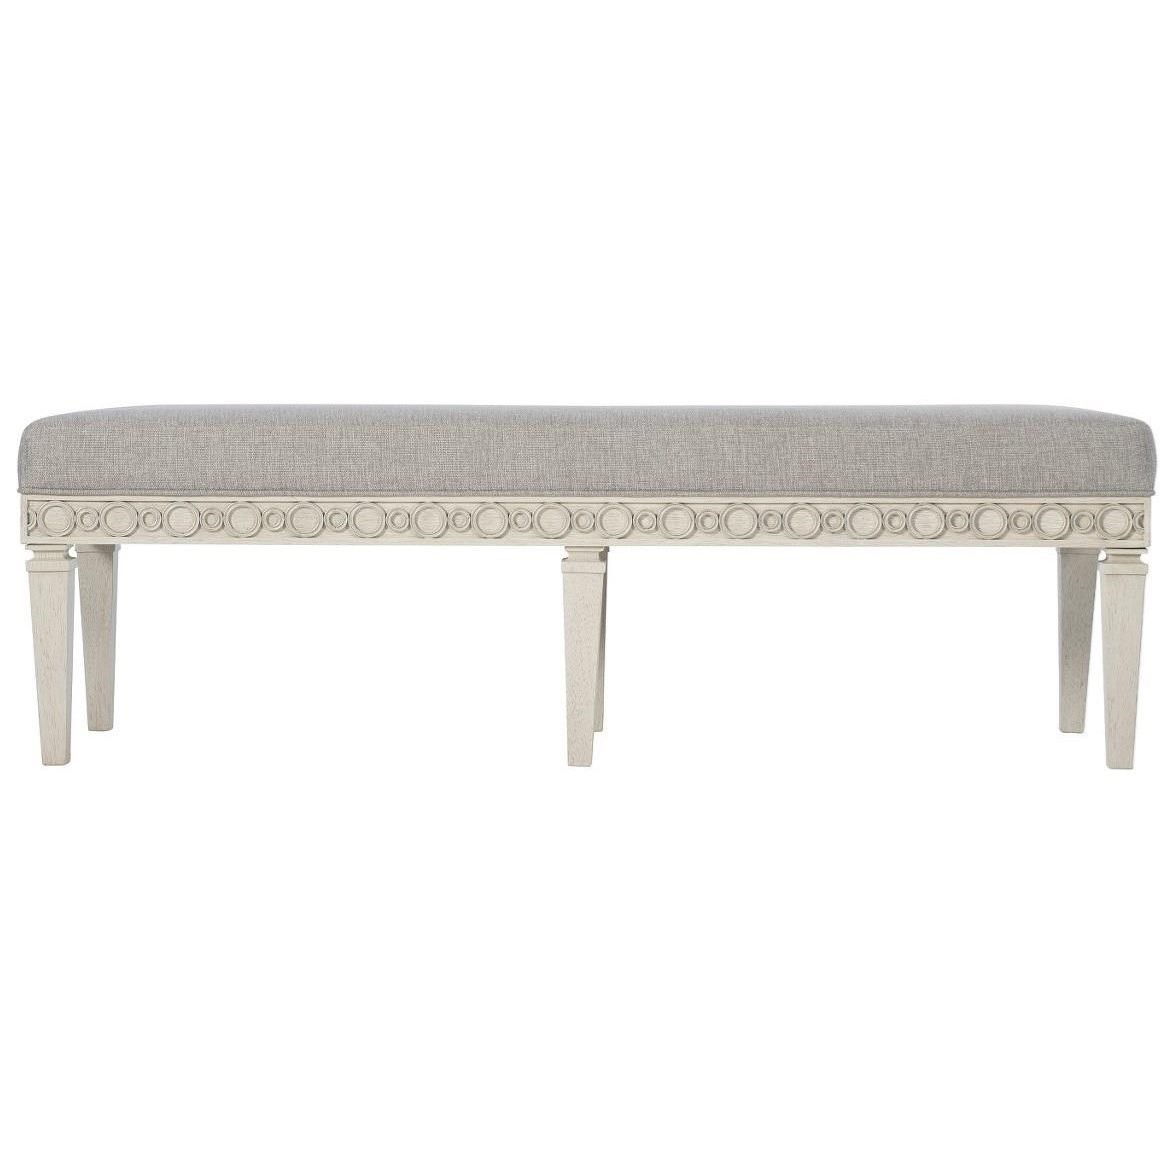 Allure Accent Bench by Bernhardt at Baer's Furniture